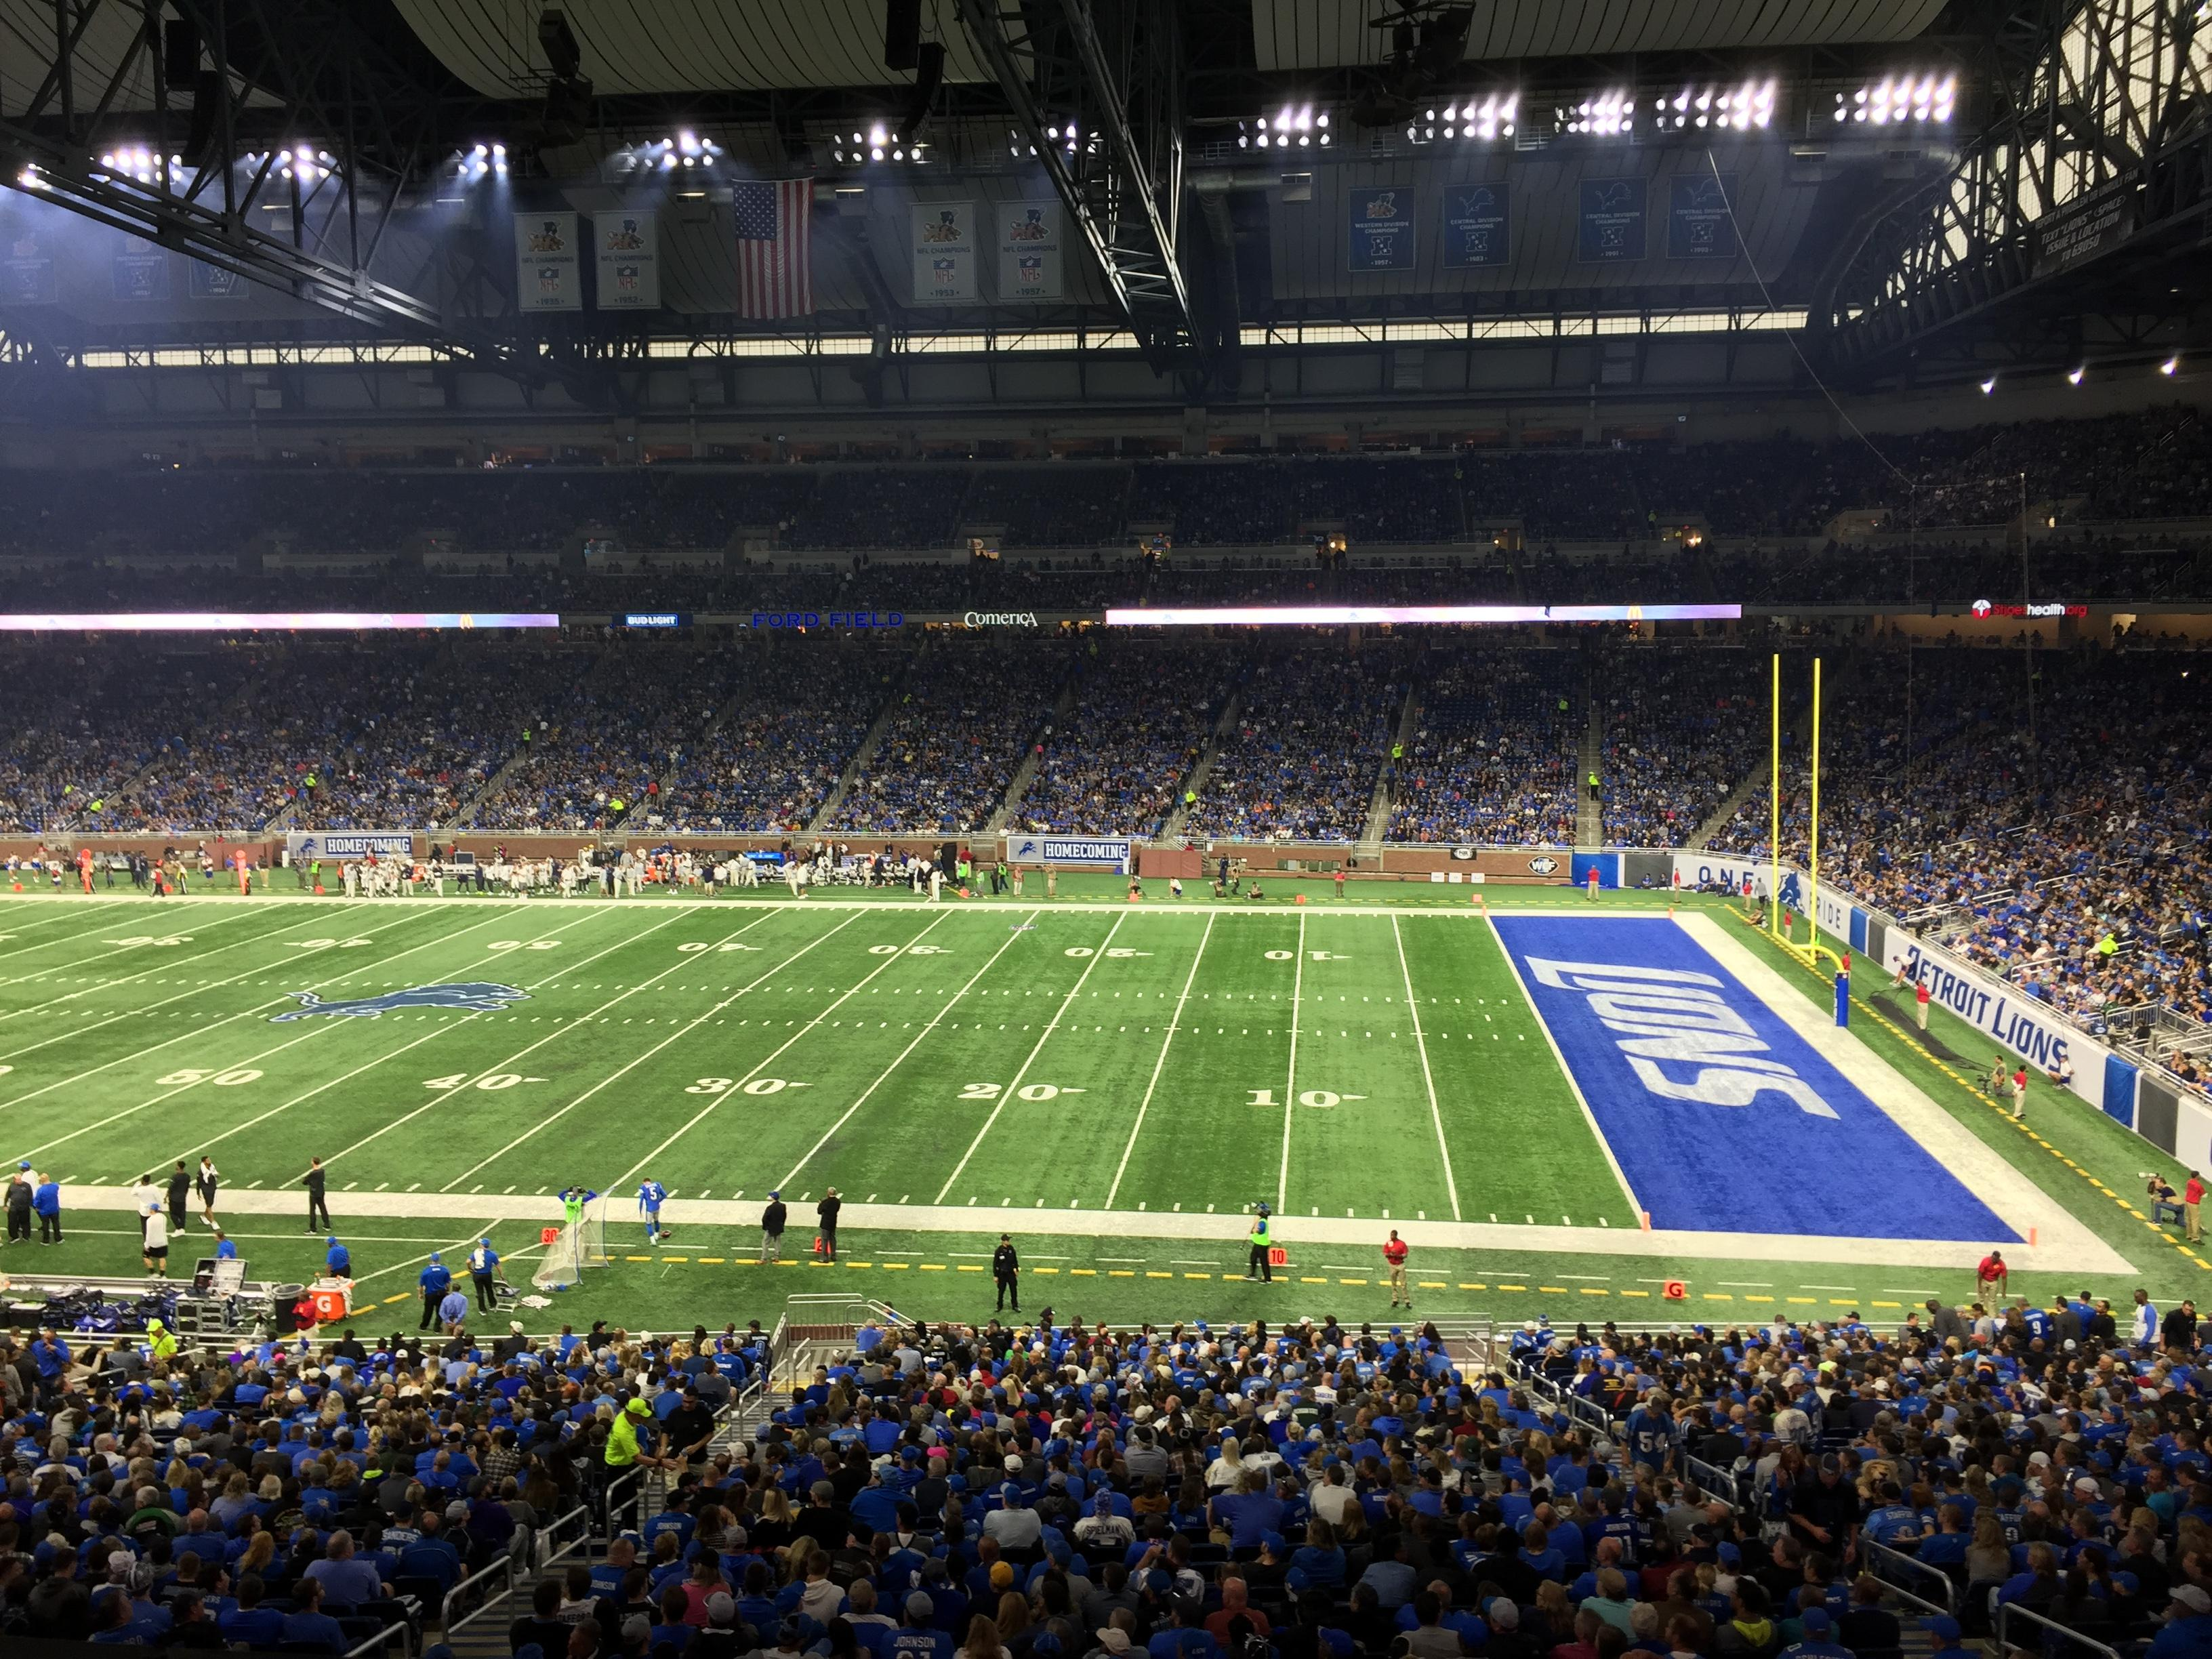 Ford Field Section 210 Row 1 Seat 20